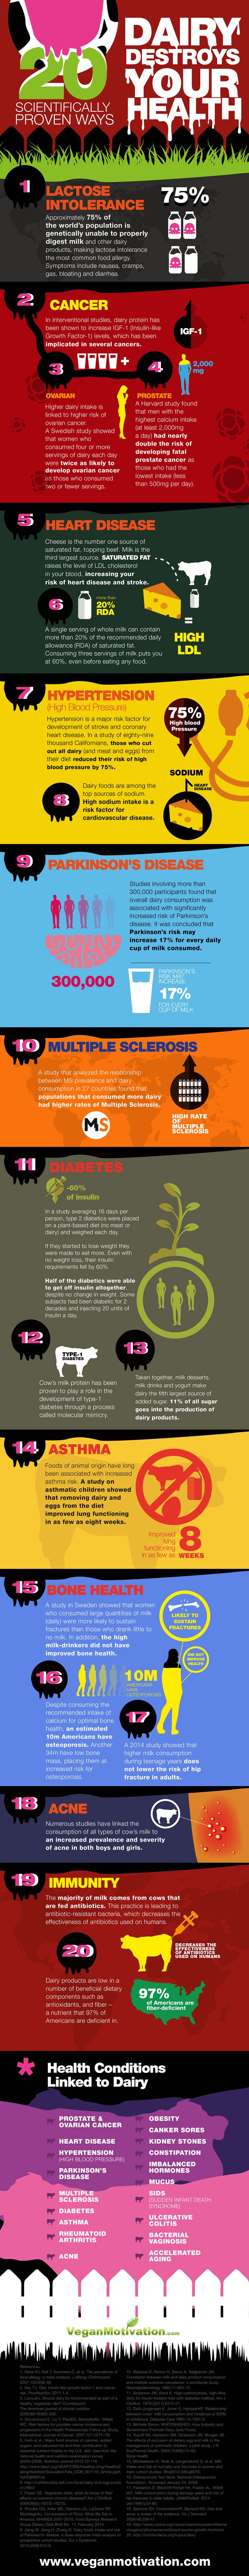 dairy facts infographic